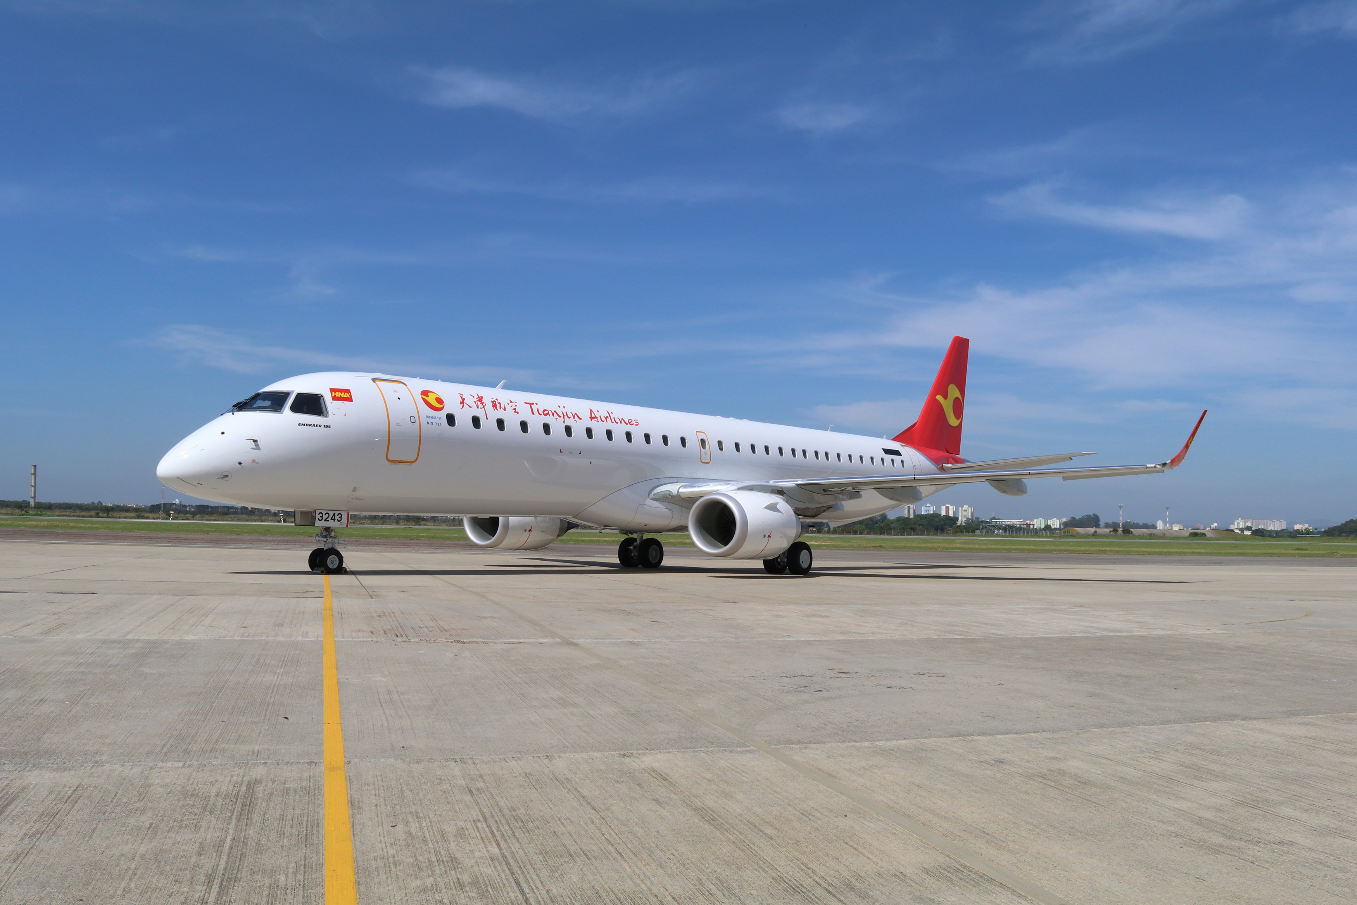 Embraer delivers 1,300th E-Jet to Tianjin Airlines